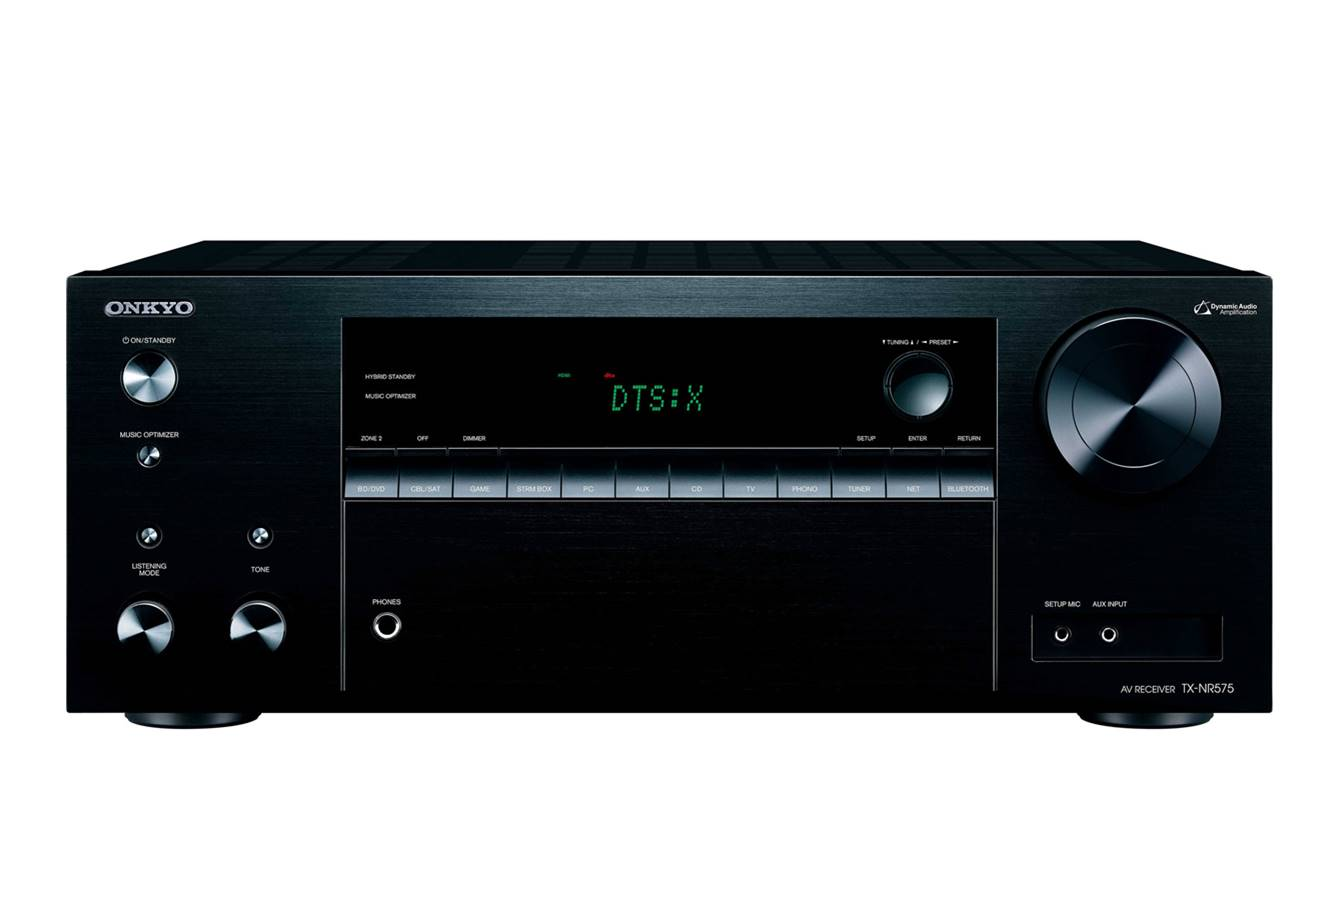 Onkyo TX-NR575 7.2 Surround Sound Receiver